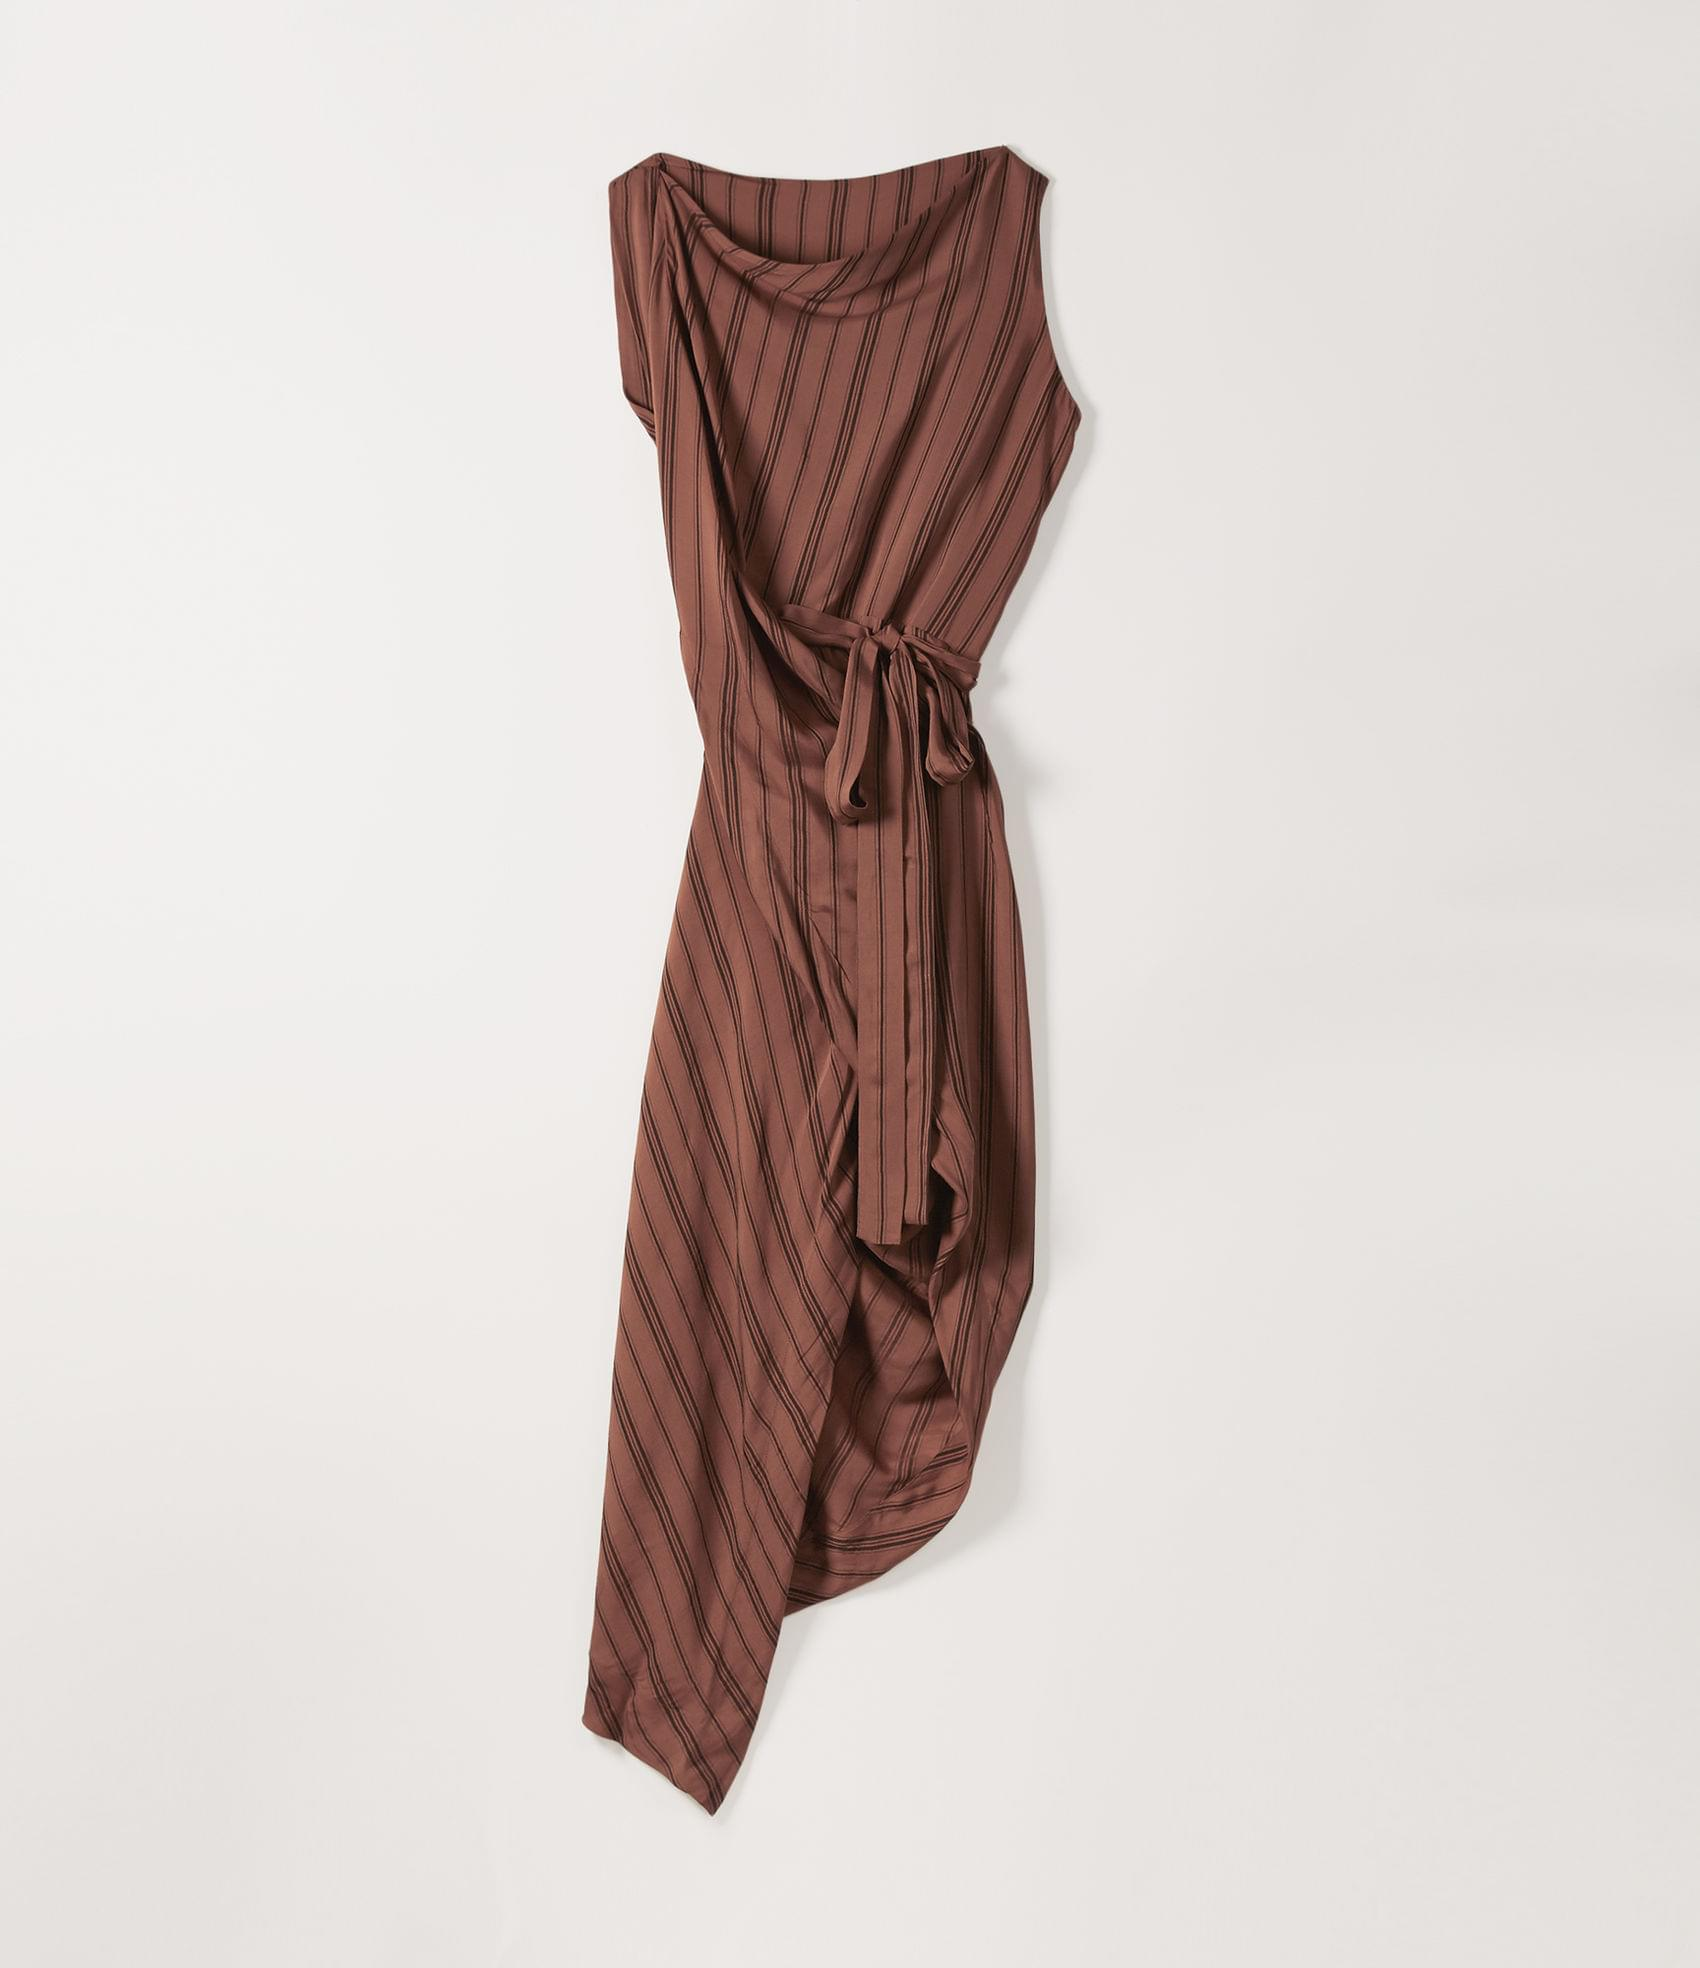 Vivienne Westwood VIAN DRESS TERRACOTTA